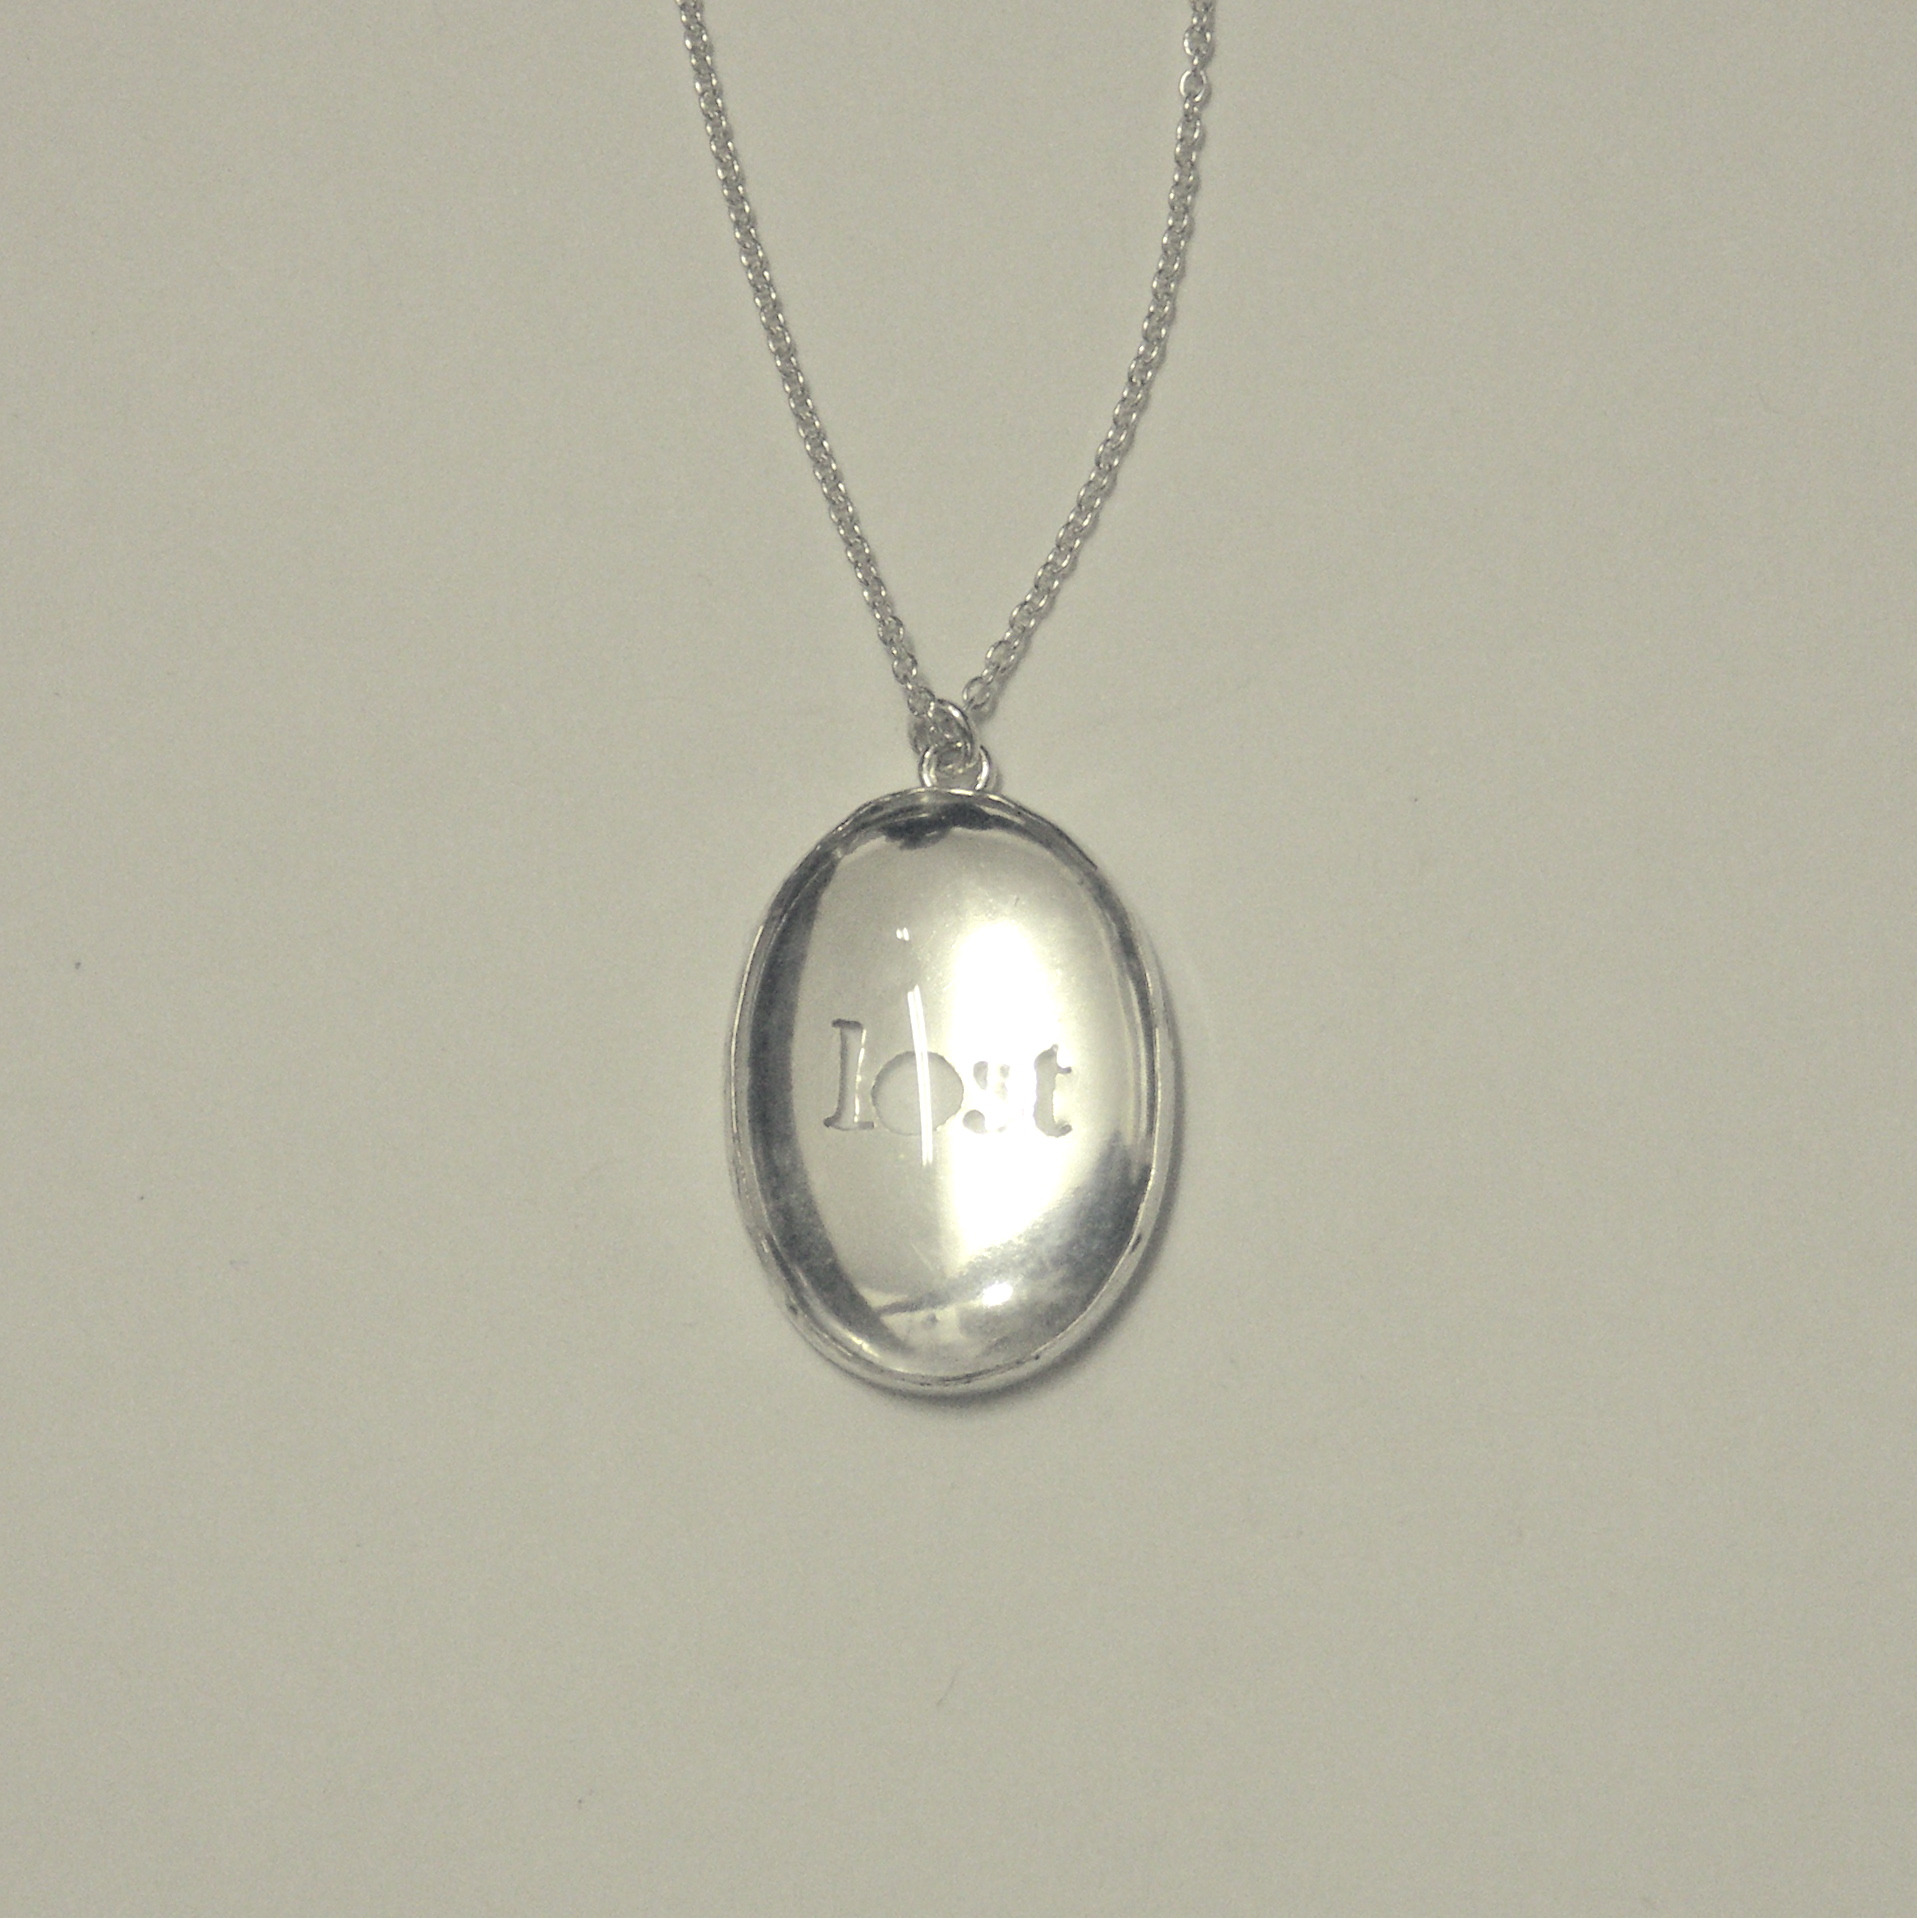 LSN-Lost setting necklace